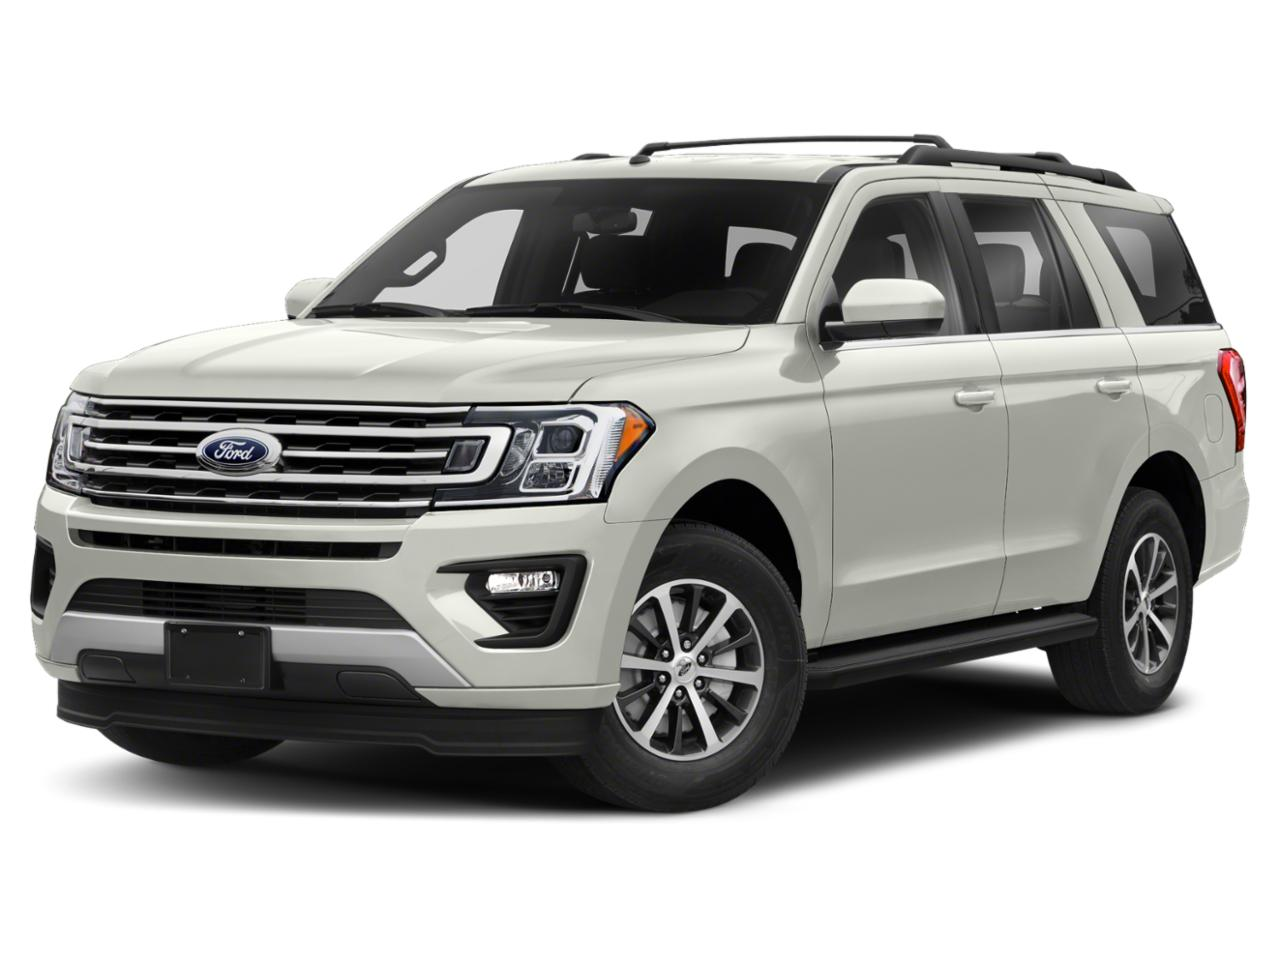 2019 Ford Expedition Vehicle Photo in Spokane, WA 99207